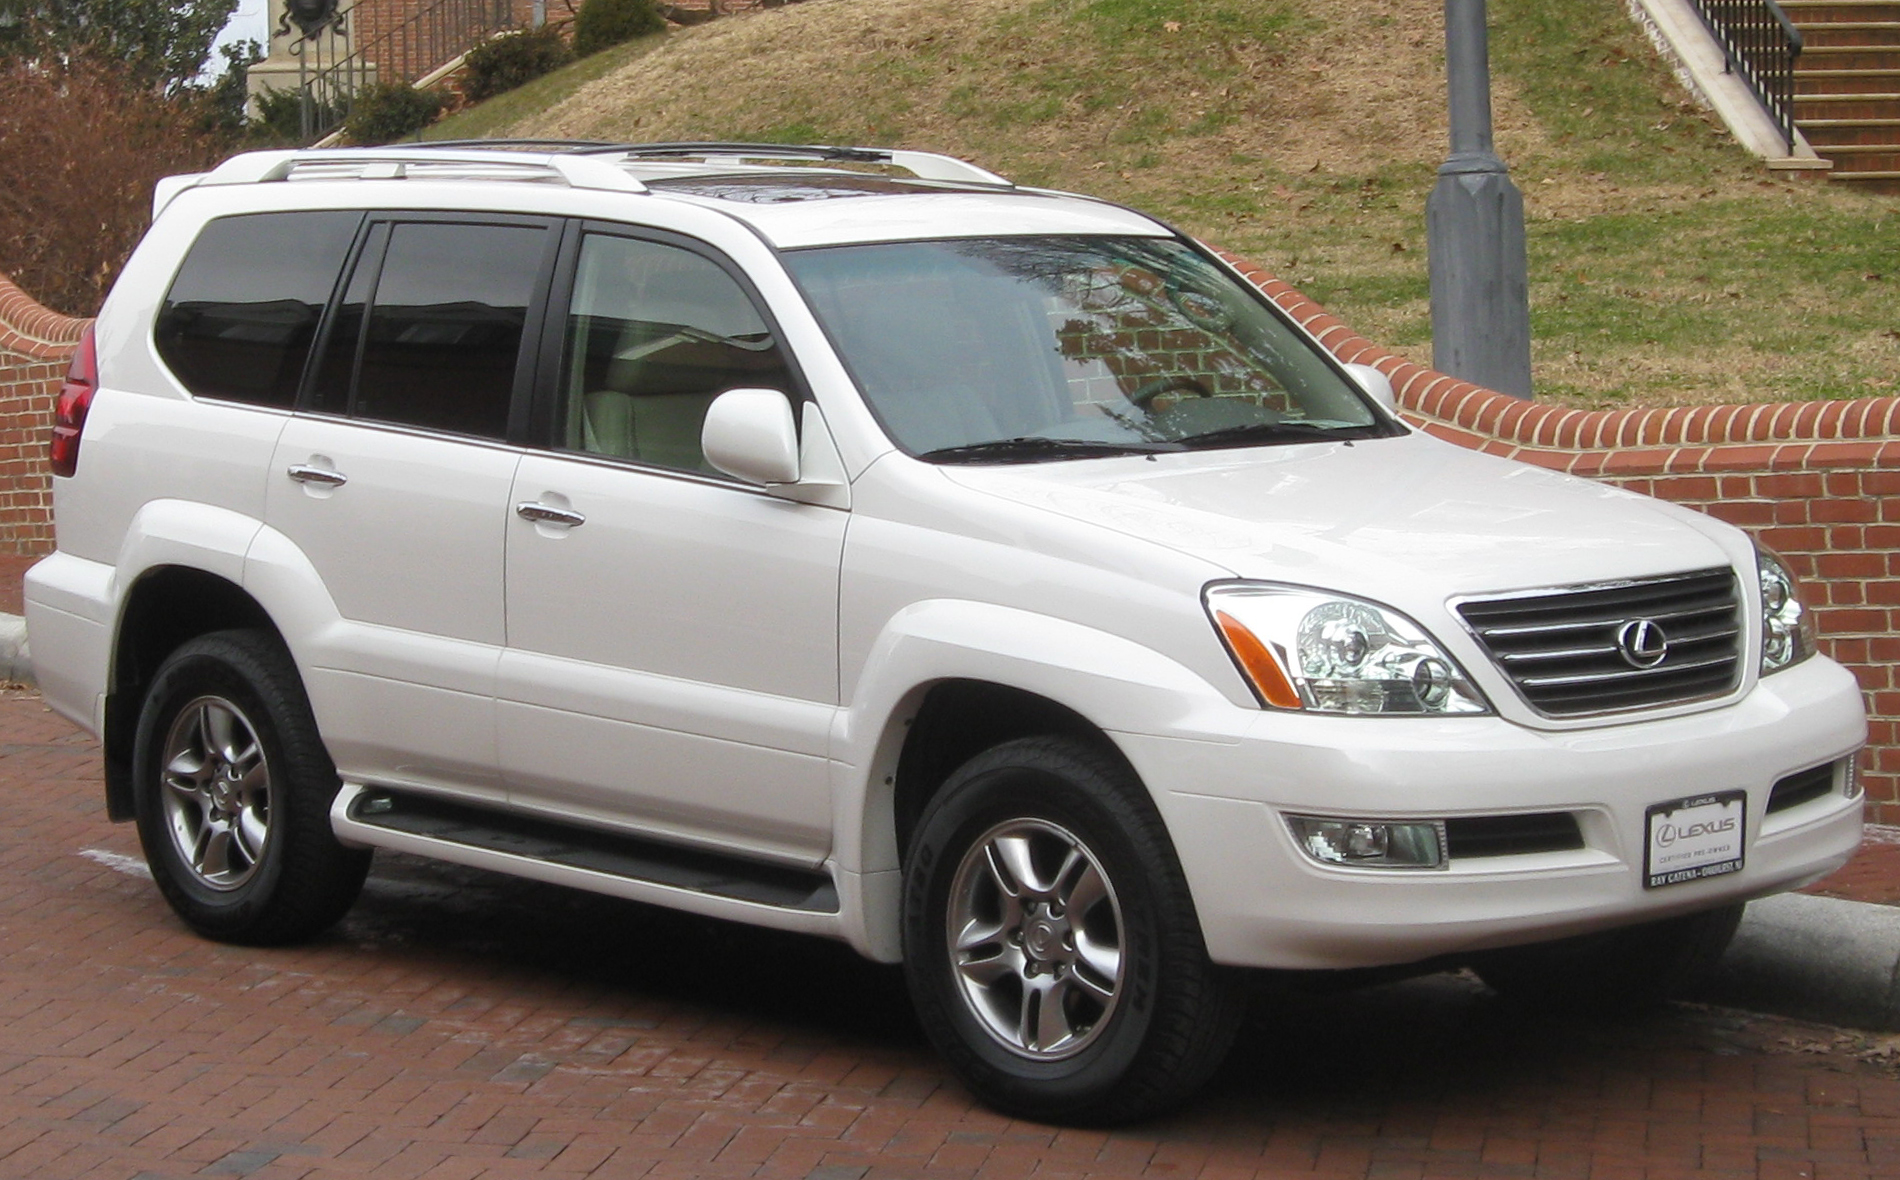 White Lifted Jeep >> 2003 Lexus GX 470 - Information and photos - MOMENTcar